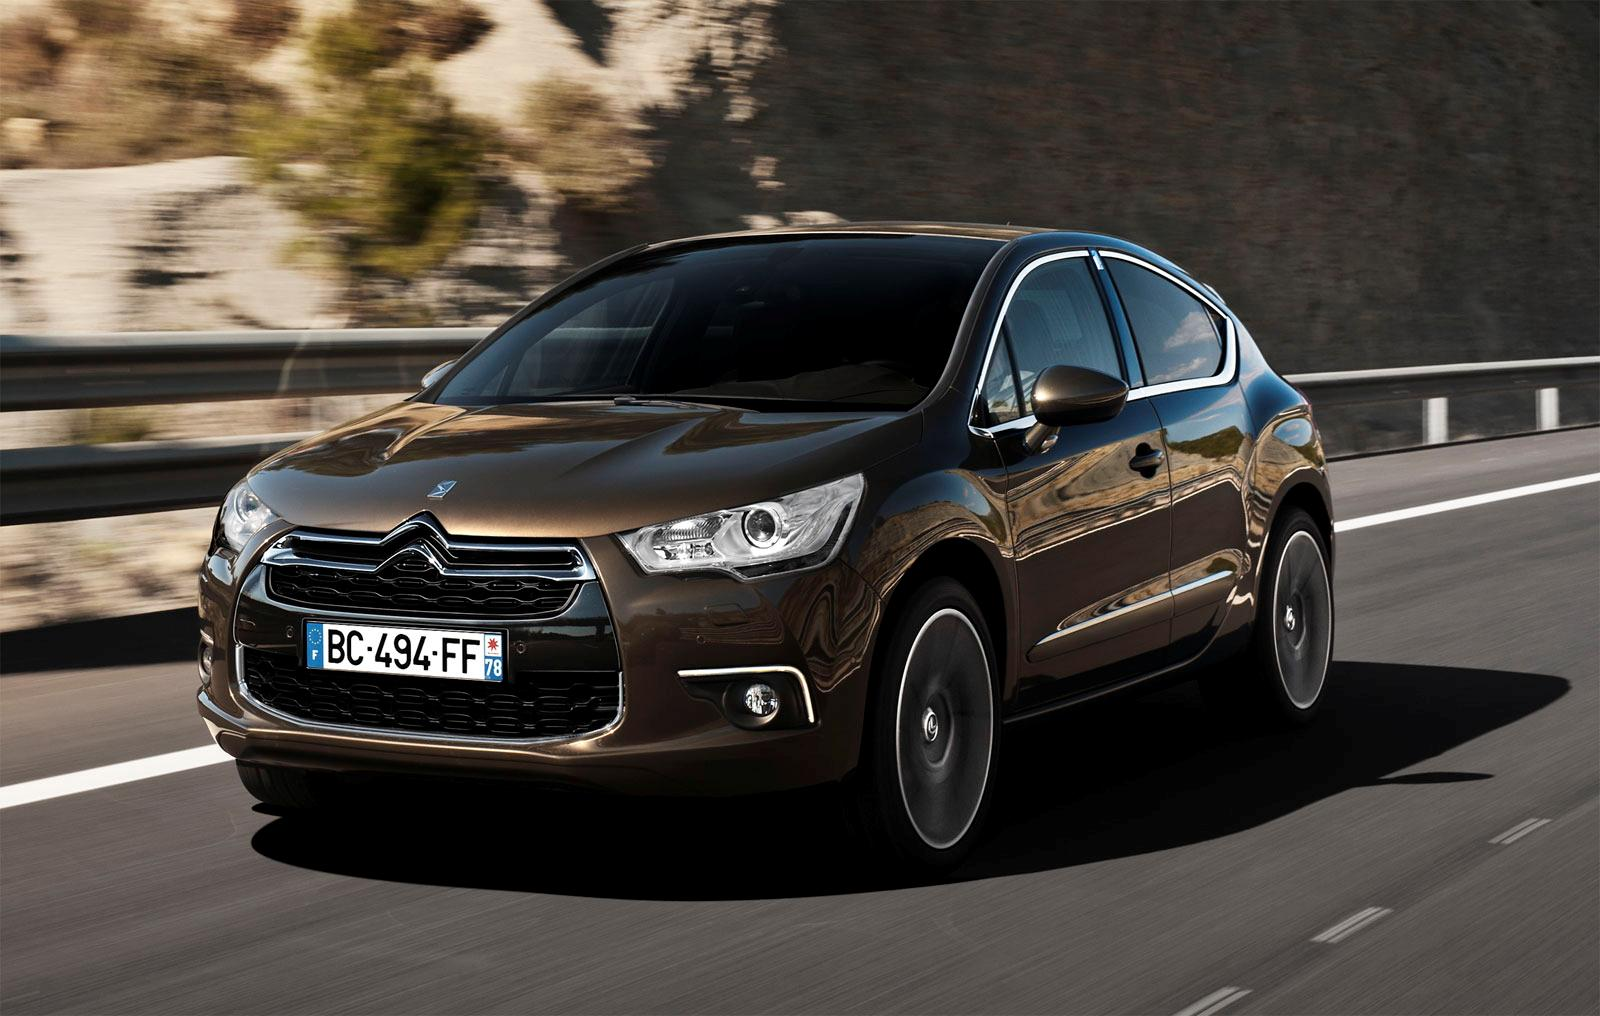 citroen ds4 2012 hottest cars today. Black Bedroom Furniture Sets. Home Design Ideas